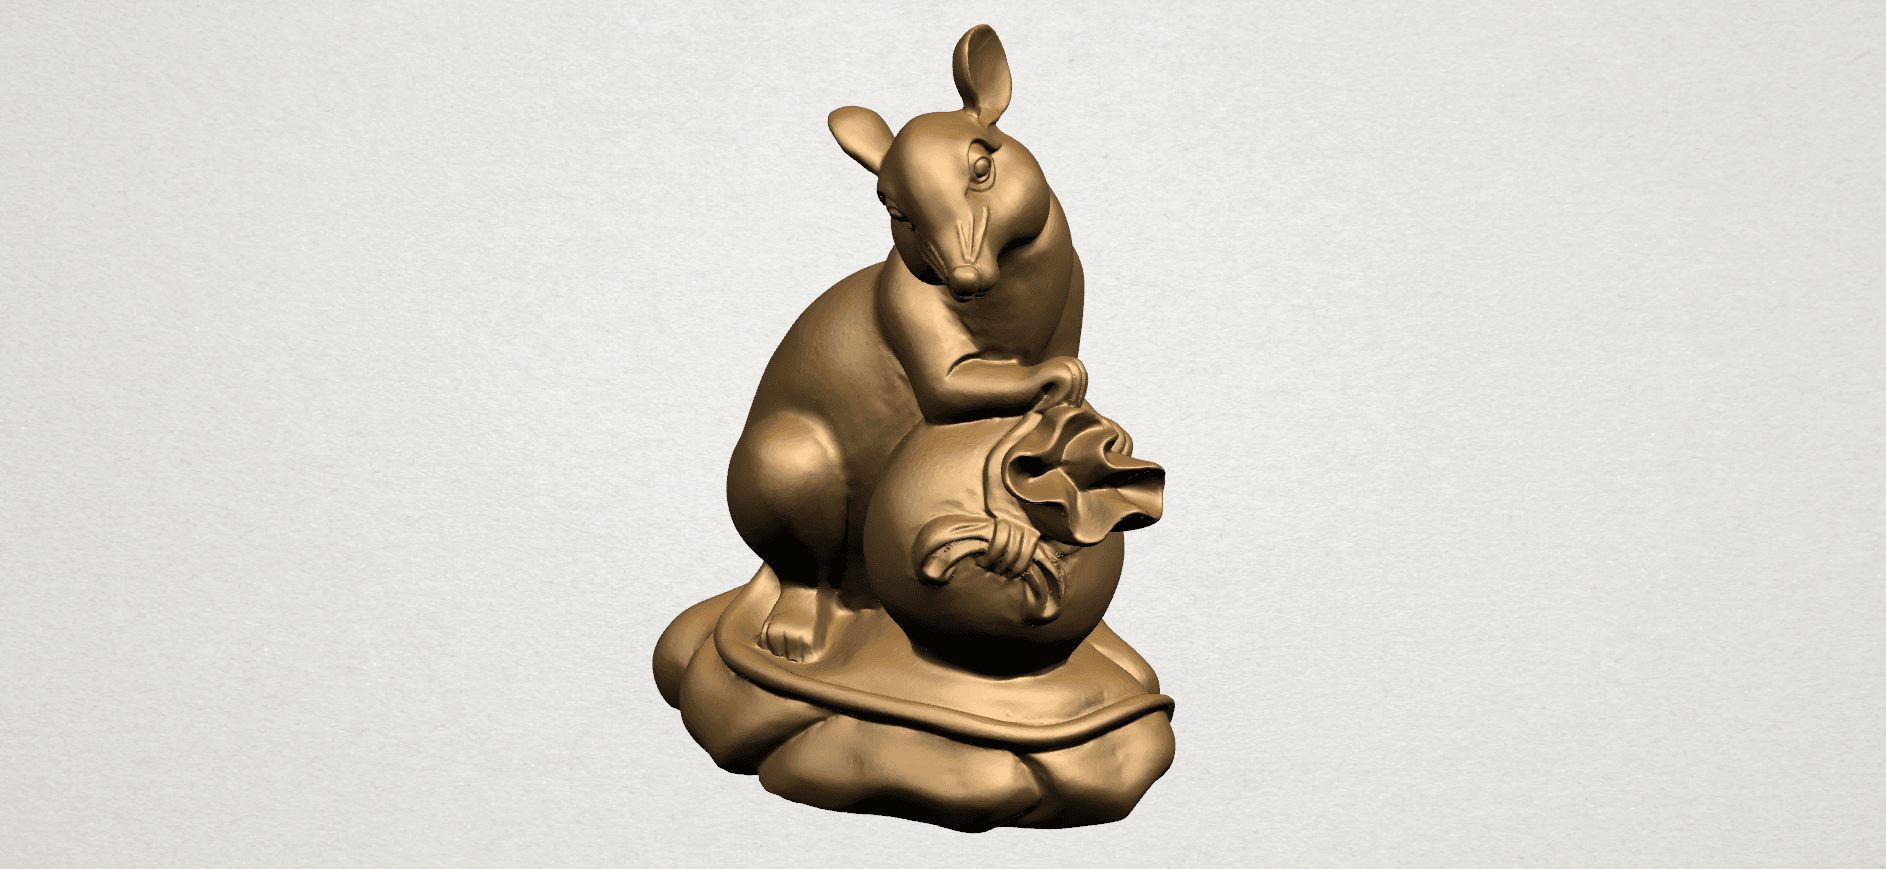 Chinese Horoscope01-A05.png Download free STL file Chinese Horoscope 01 Rat • 3D printing object, GeorgesNikkei